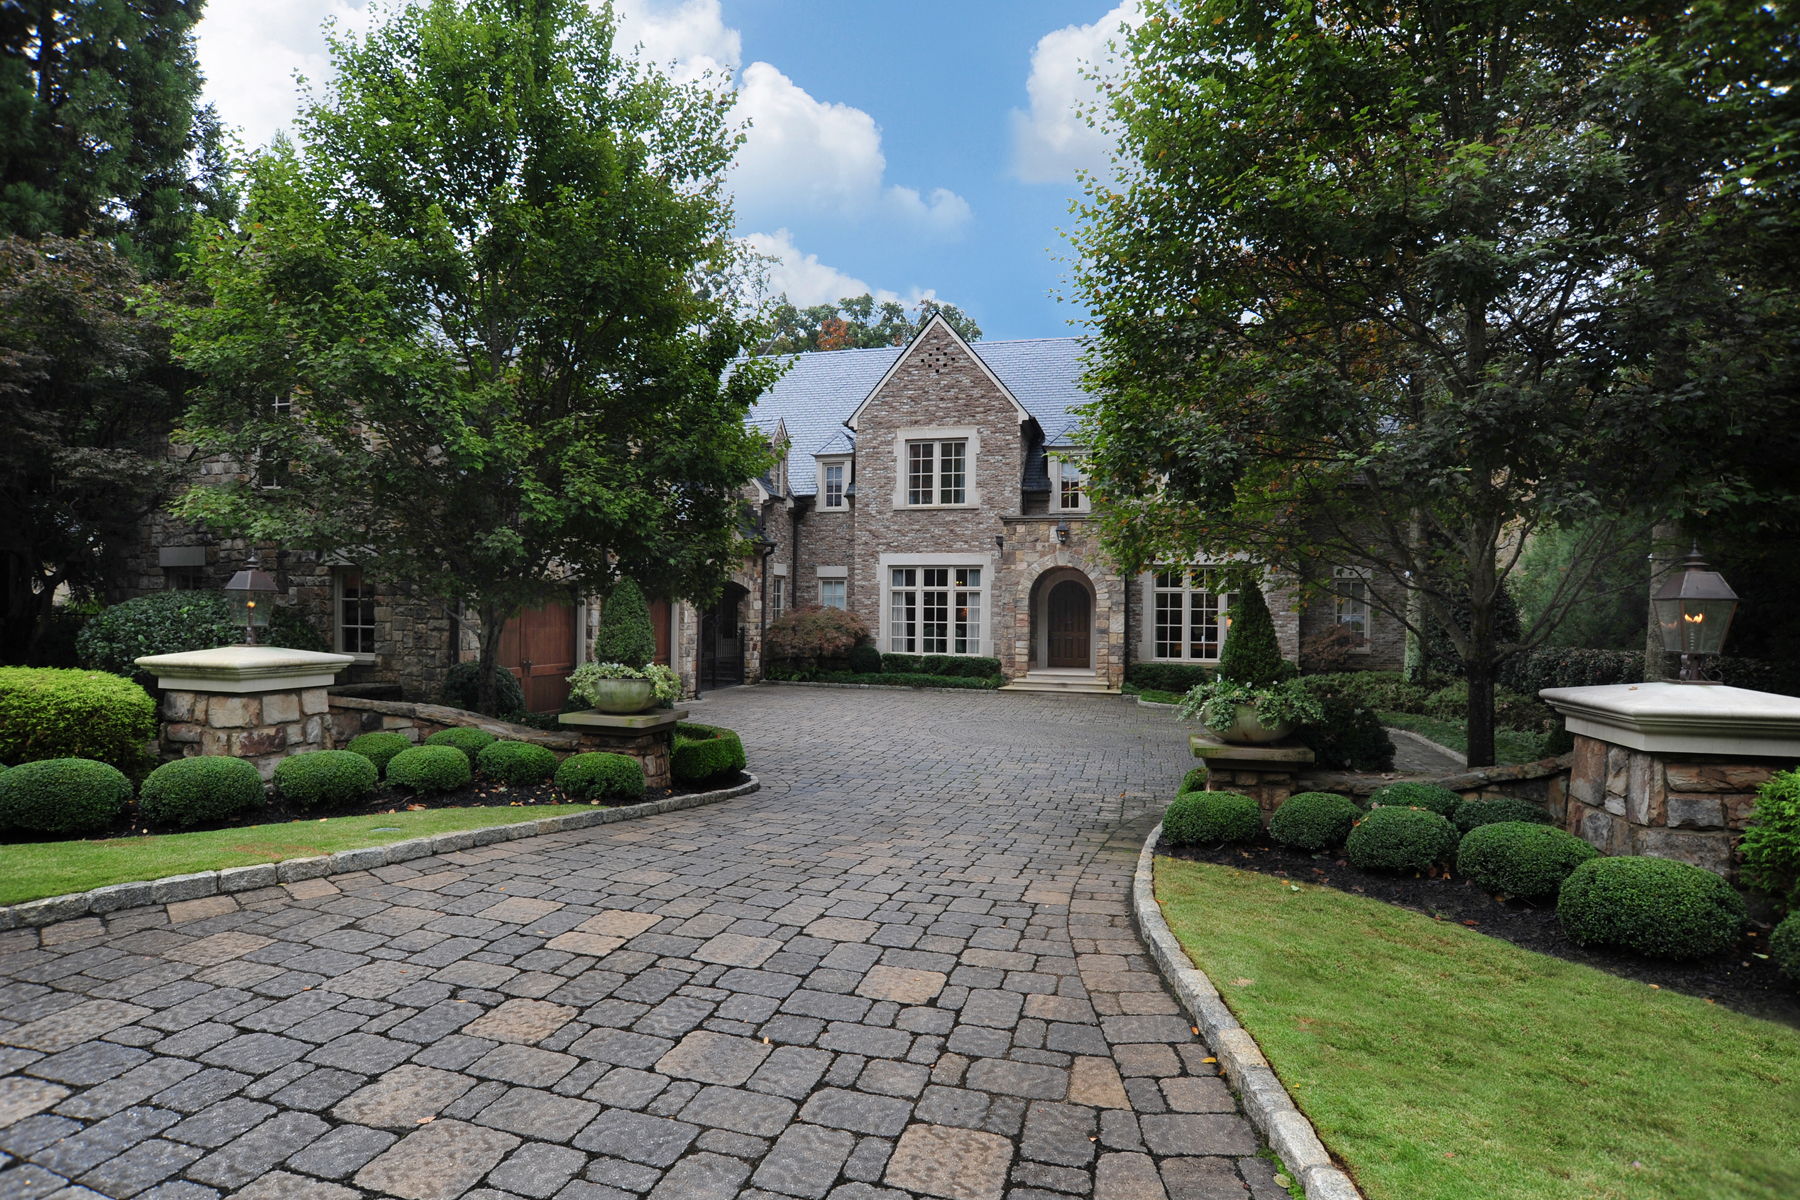 一戸建て のために 売買 アット Refined Elegance In Atlanta's Most Prestigious Neighborhood 675 West Paces Ferry Road NW Home 4 Buckhead, Atlanta, ジョージア, 30327 アメリカ合衆国